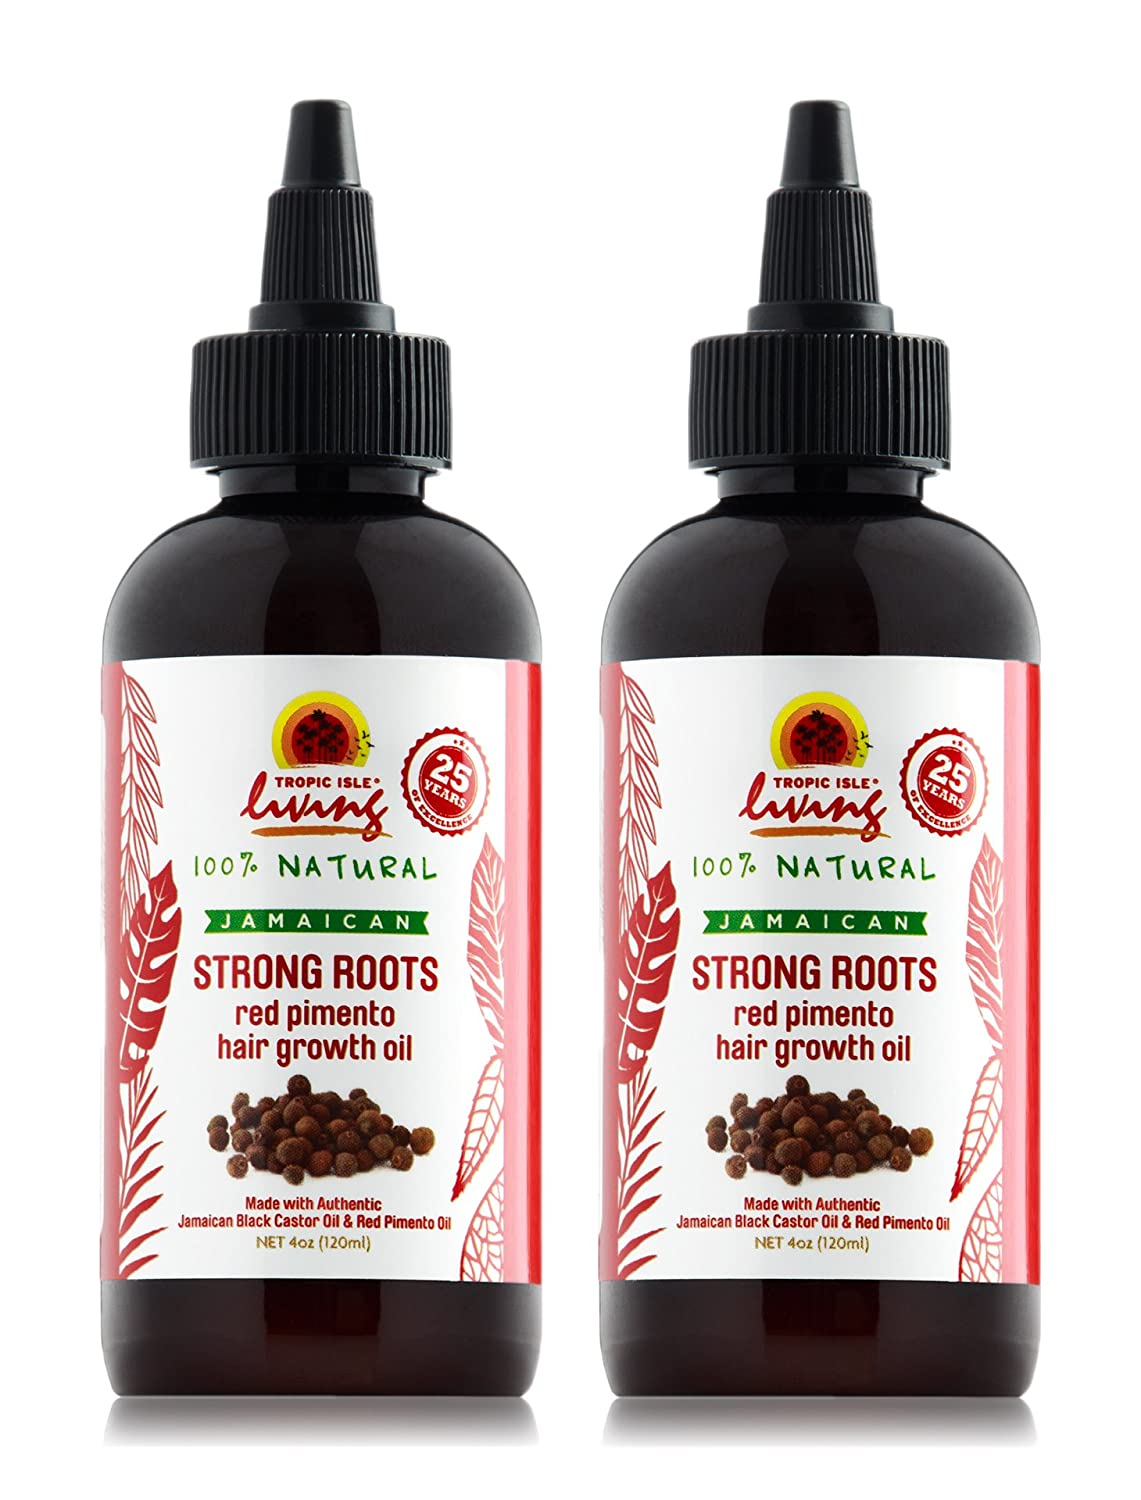 Tropic Isle Living Jamaican Strong Roots Red Pimento Hair Growth Oil, 4 oz (Pack of 2) TILJSRRPHGOPK2001